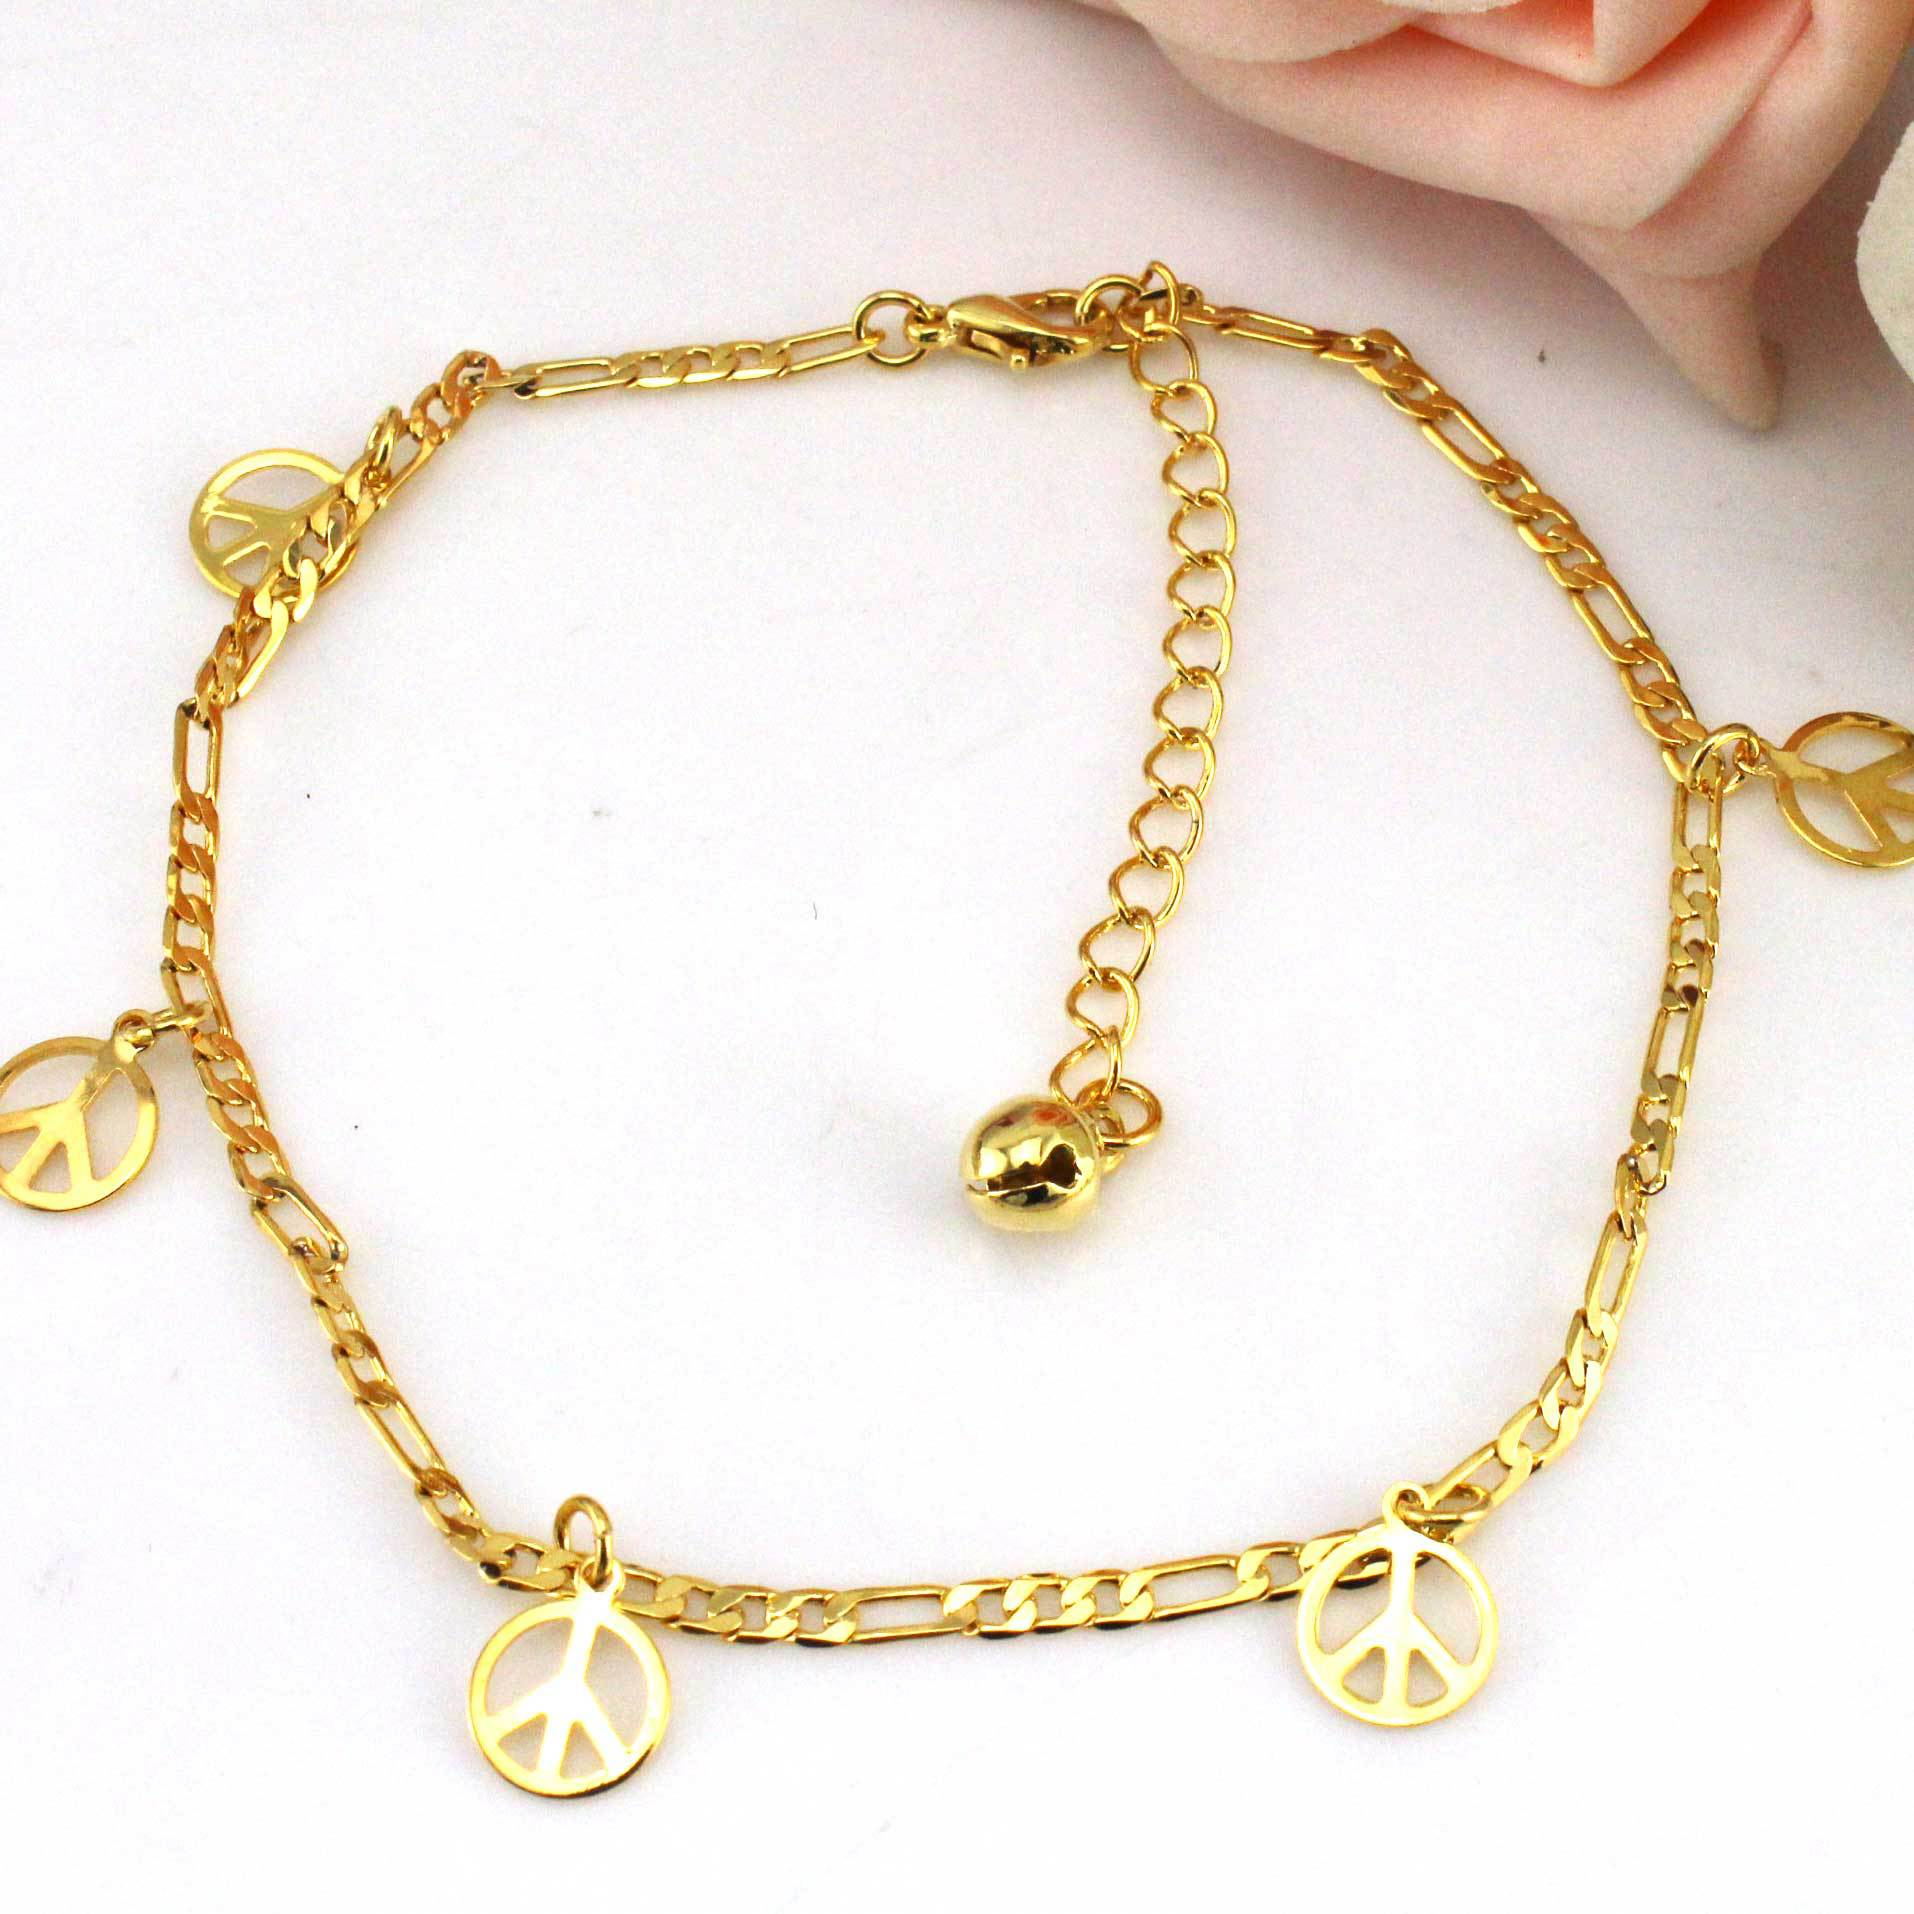 anklet flower ceramic round design chain bracelet new itm gold yellow with